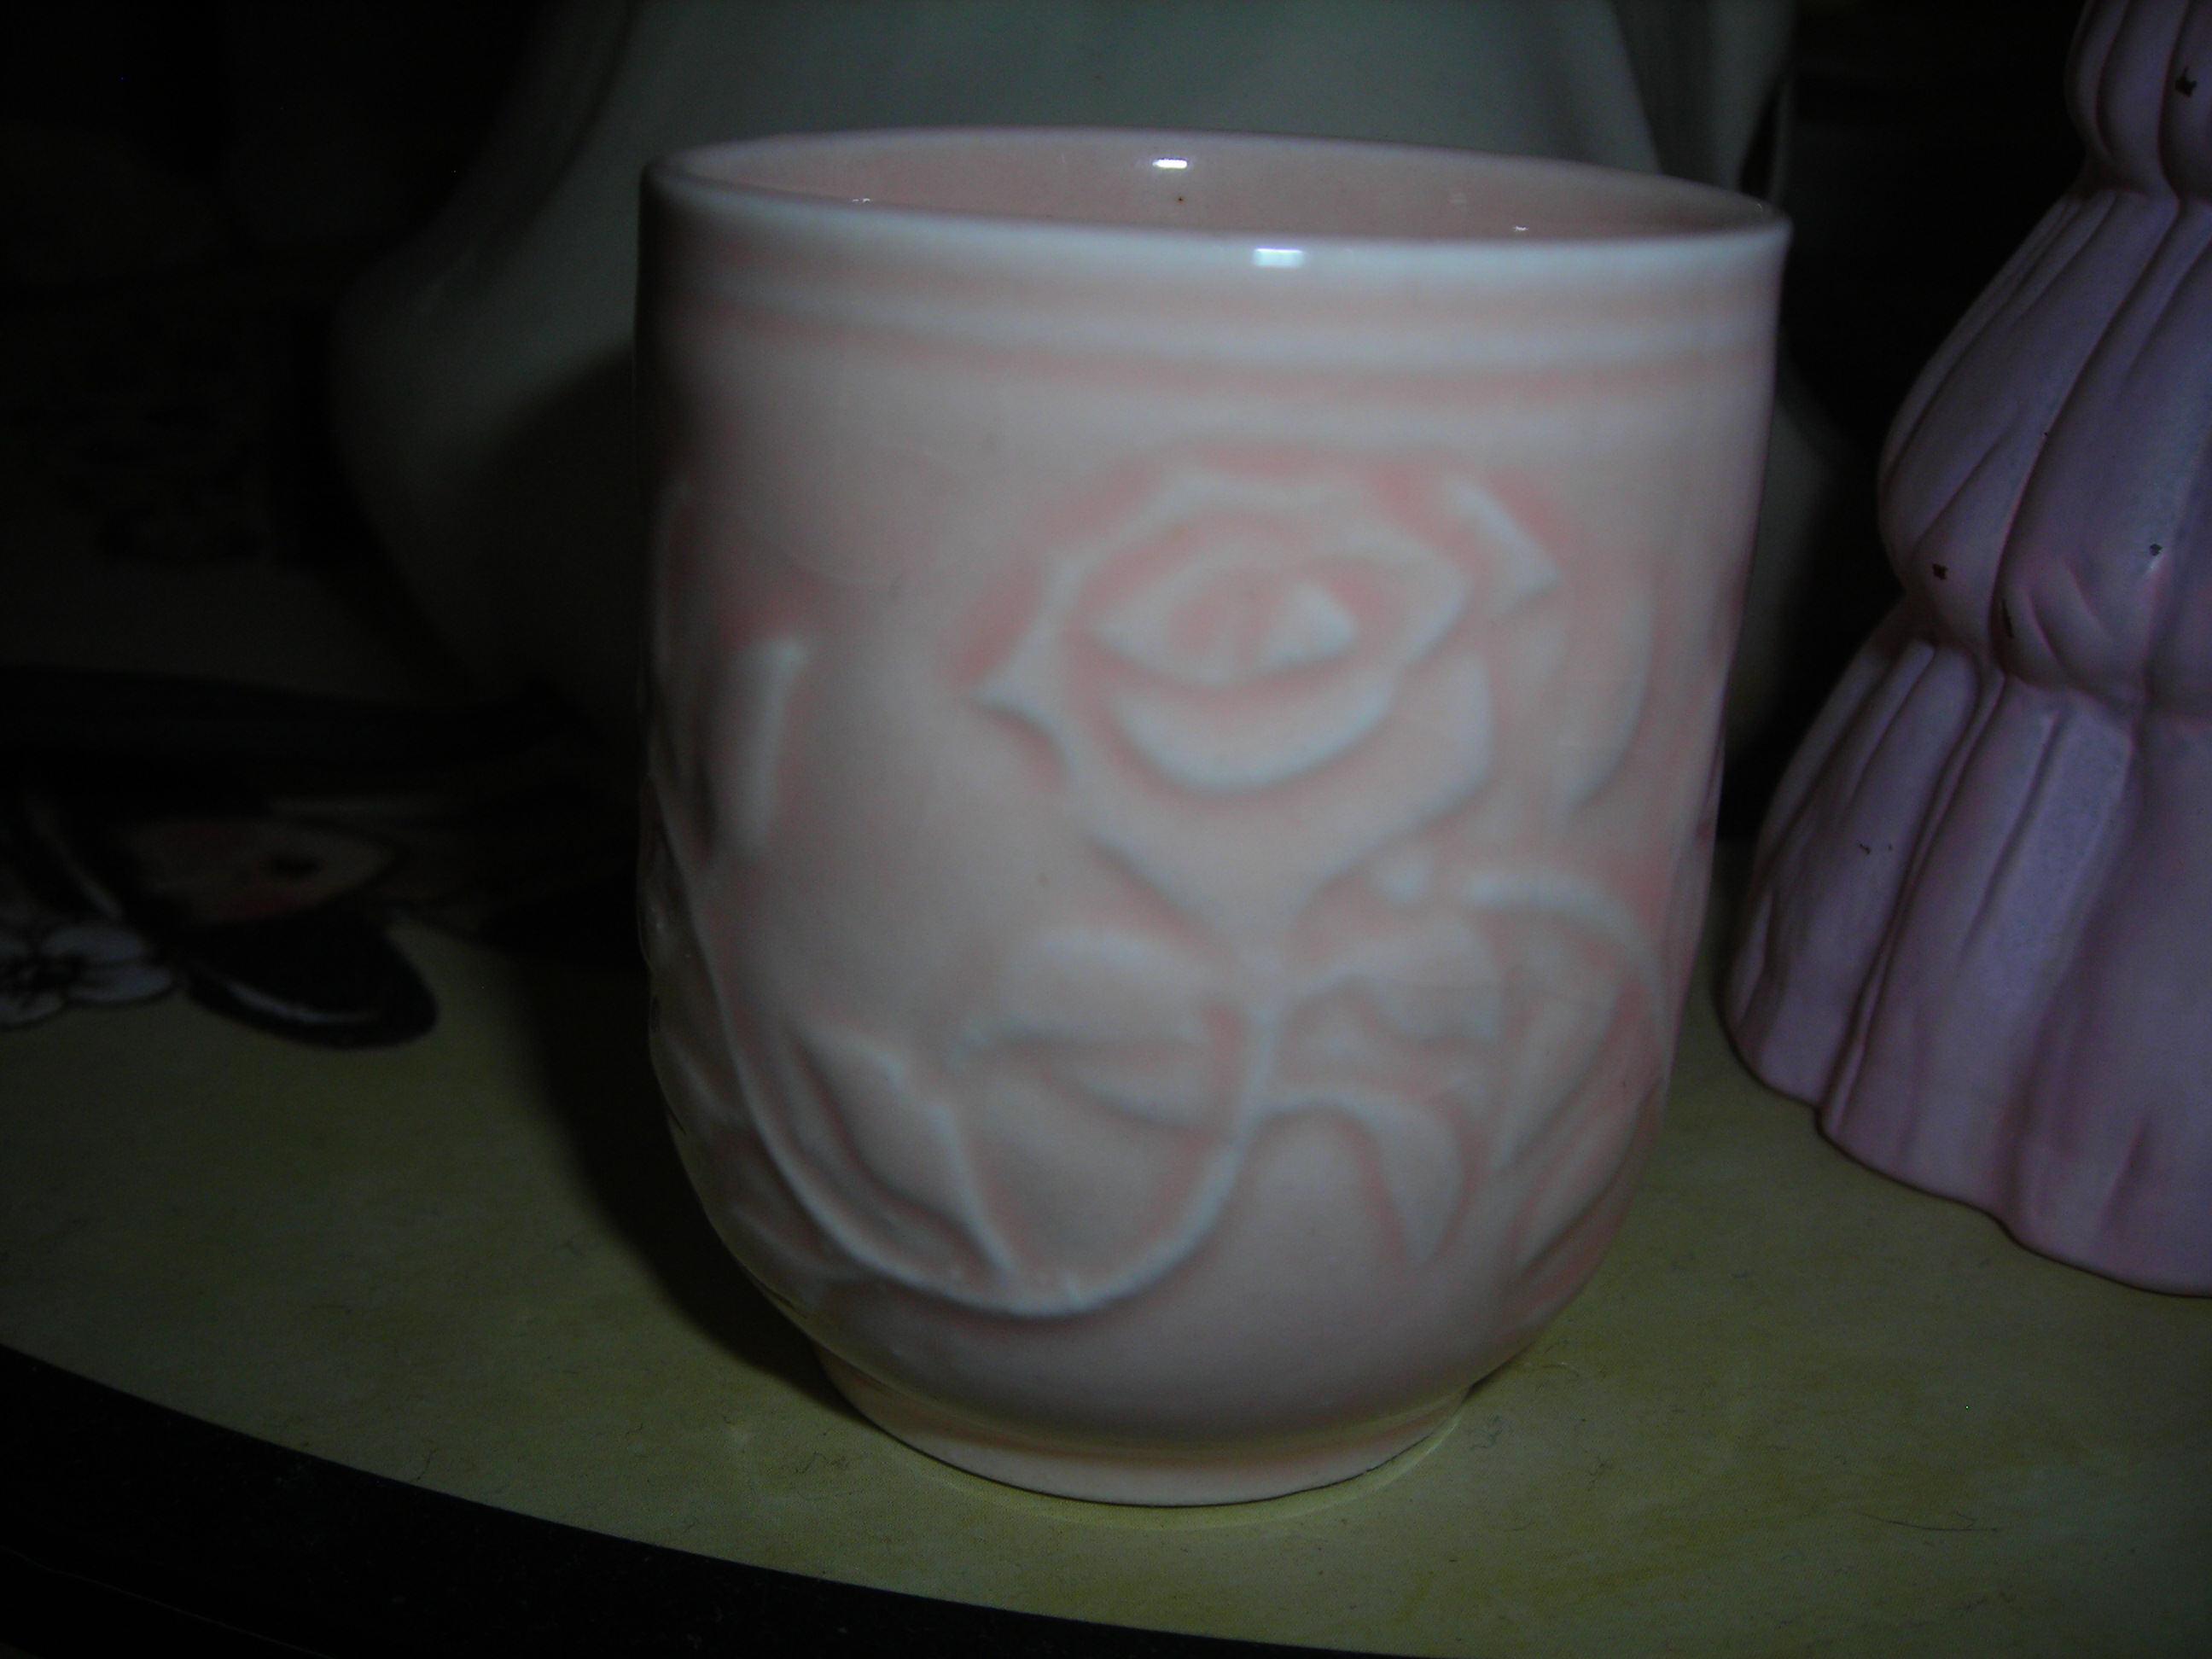 you can't tell by the pic, but this little beauty is VERY tiny. about 1 1/2 inches tall. love its pinkness and rose designs